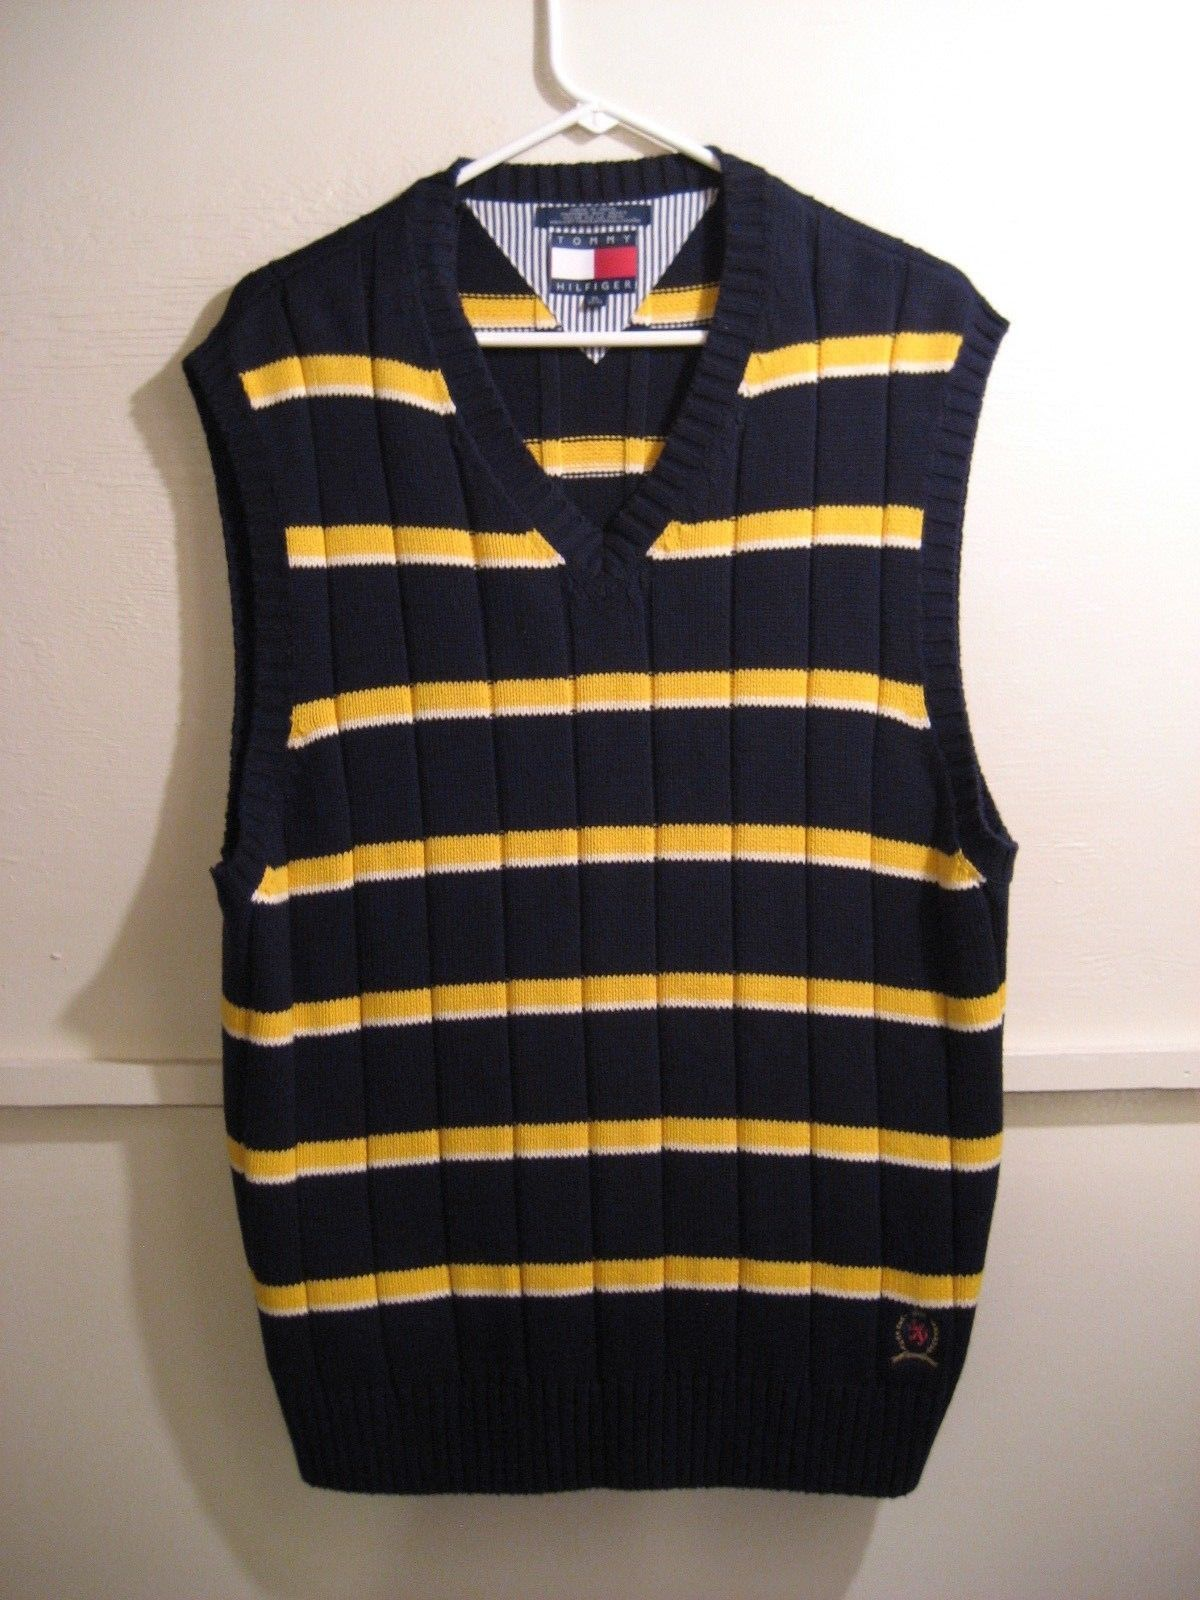 MENS TOMMY HILFIGER KNIT SWEATER VEST, SIZE XL 100% COTTON